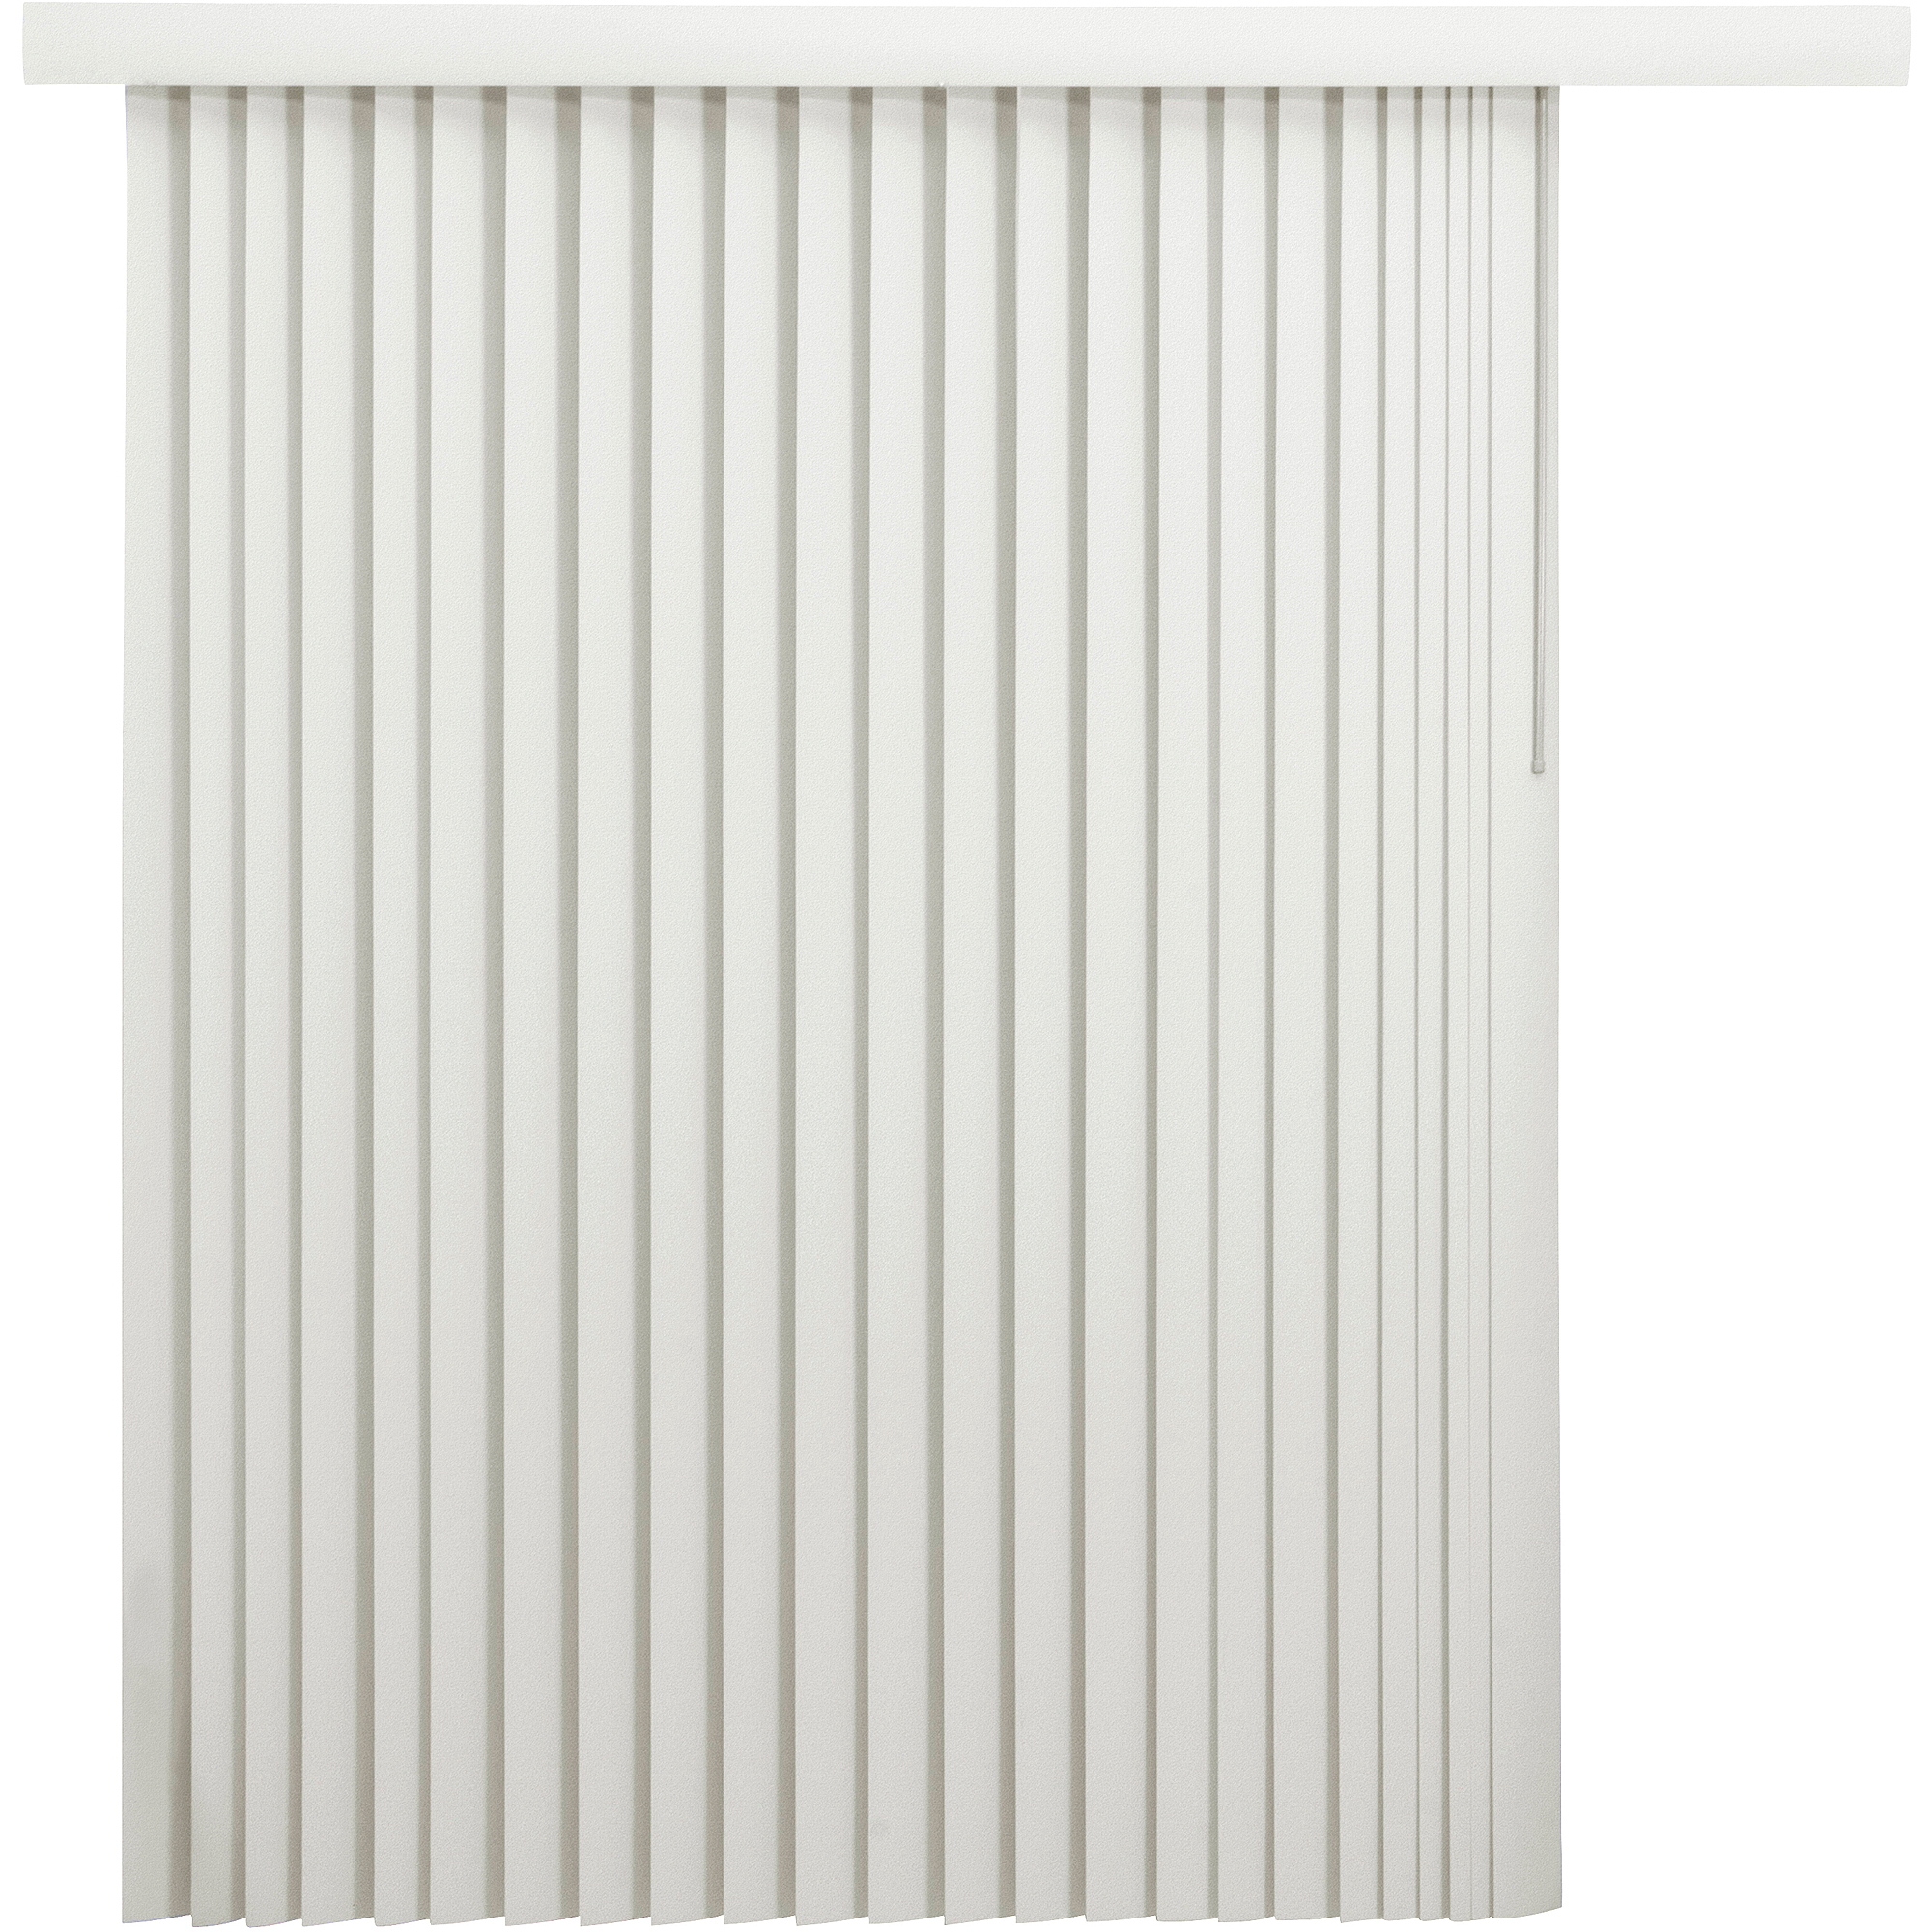 mainstays vertical blinds with embossed leaf pattern oyster